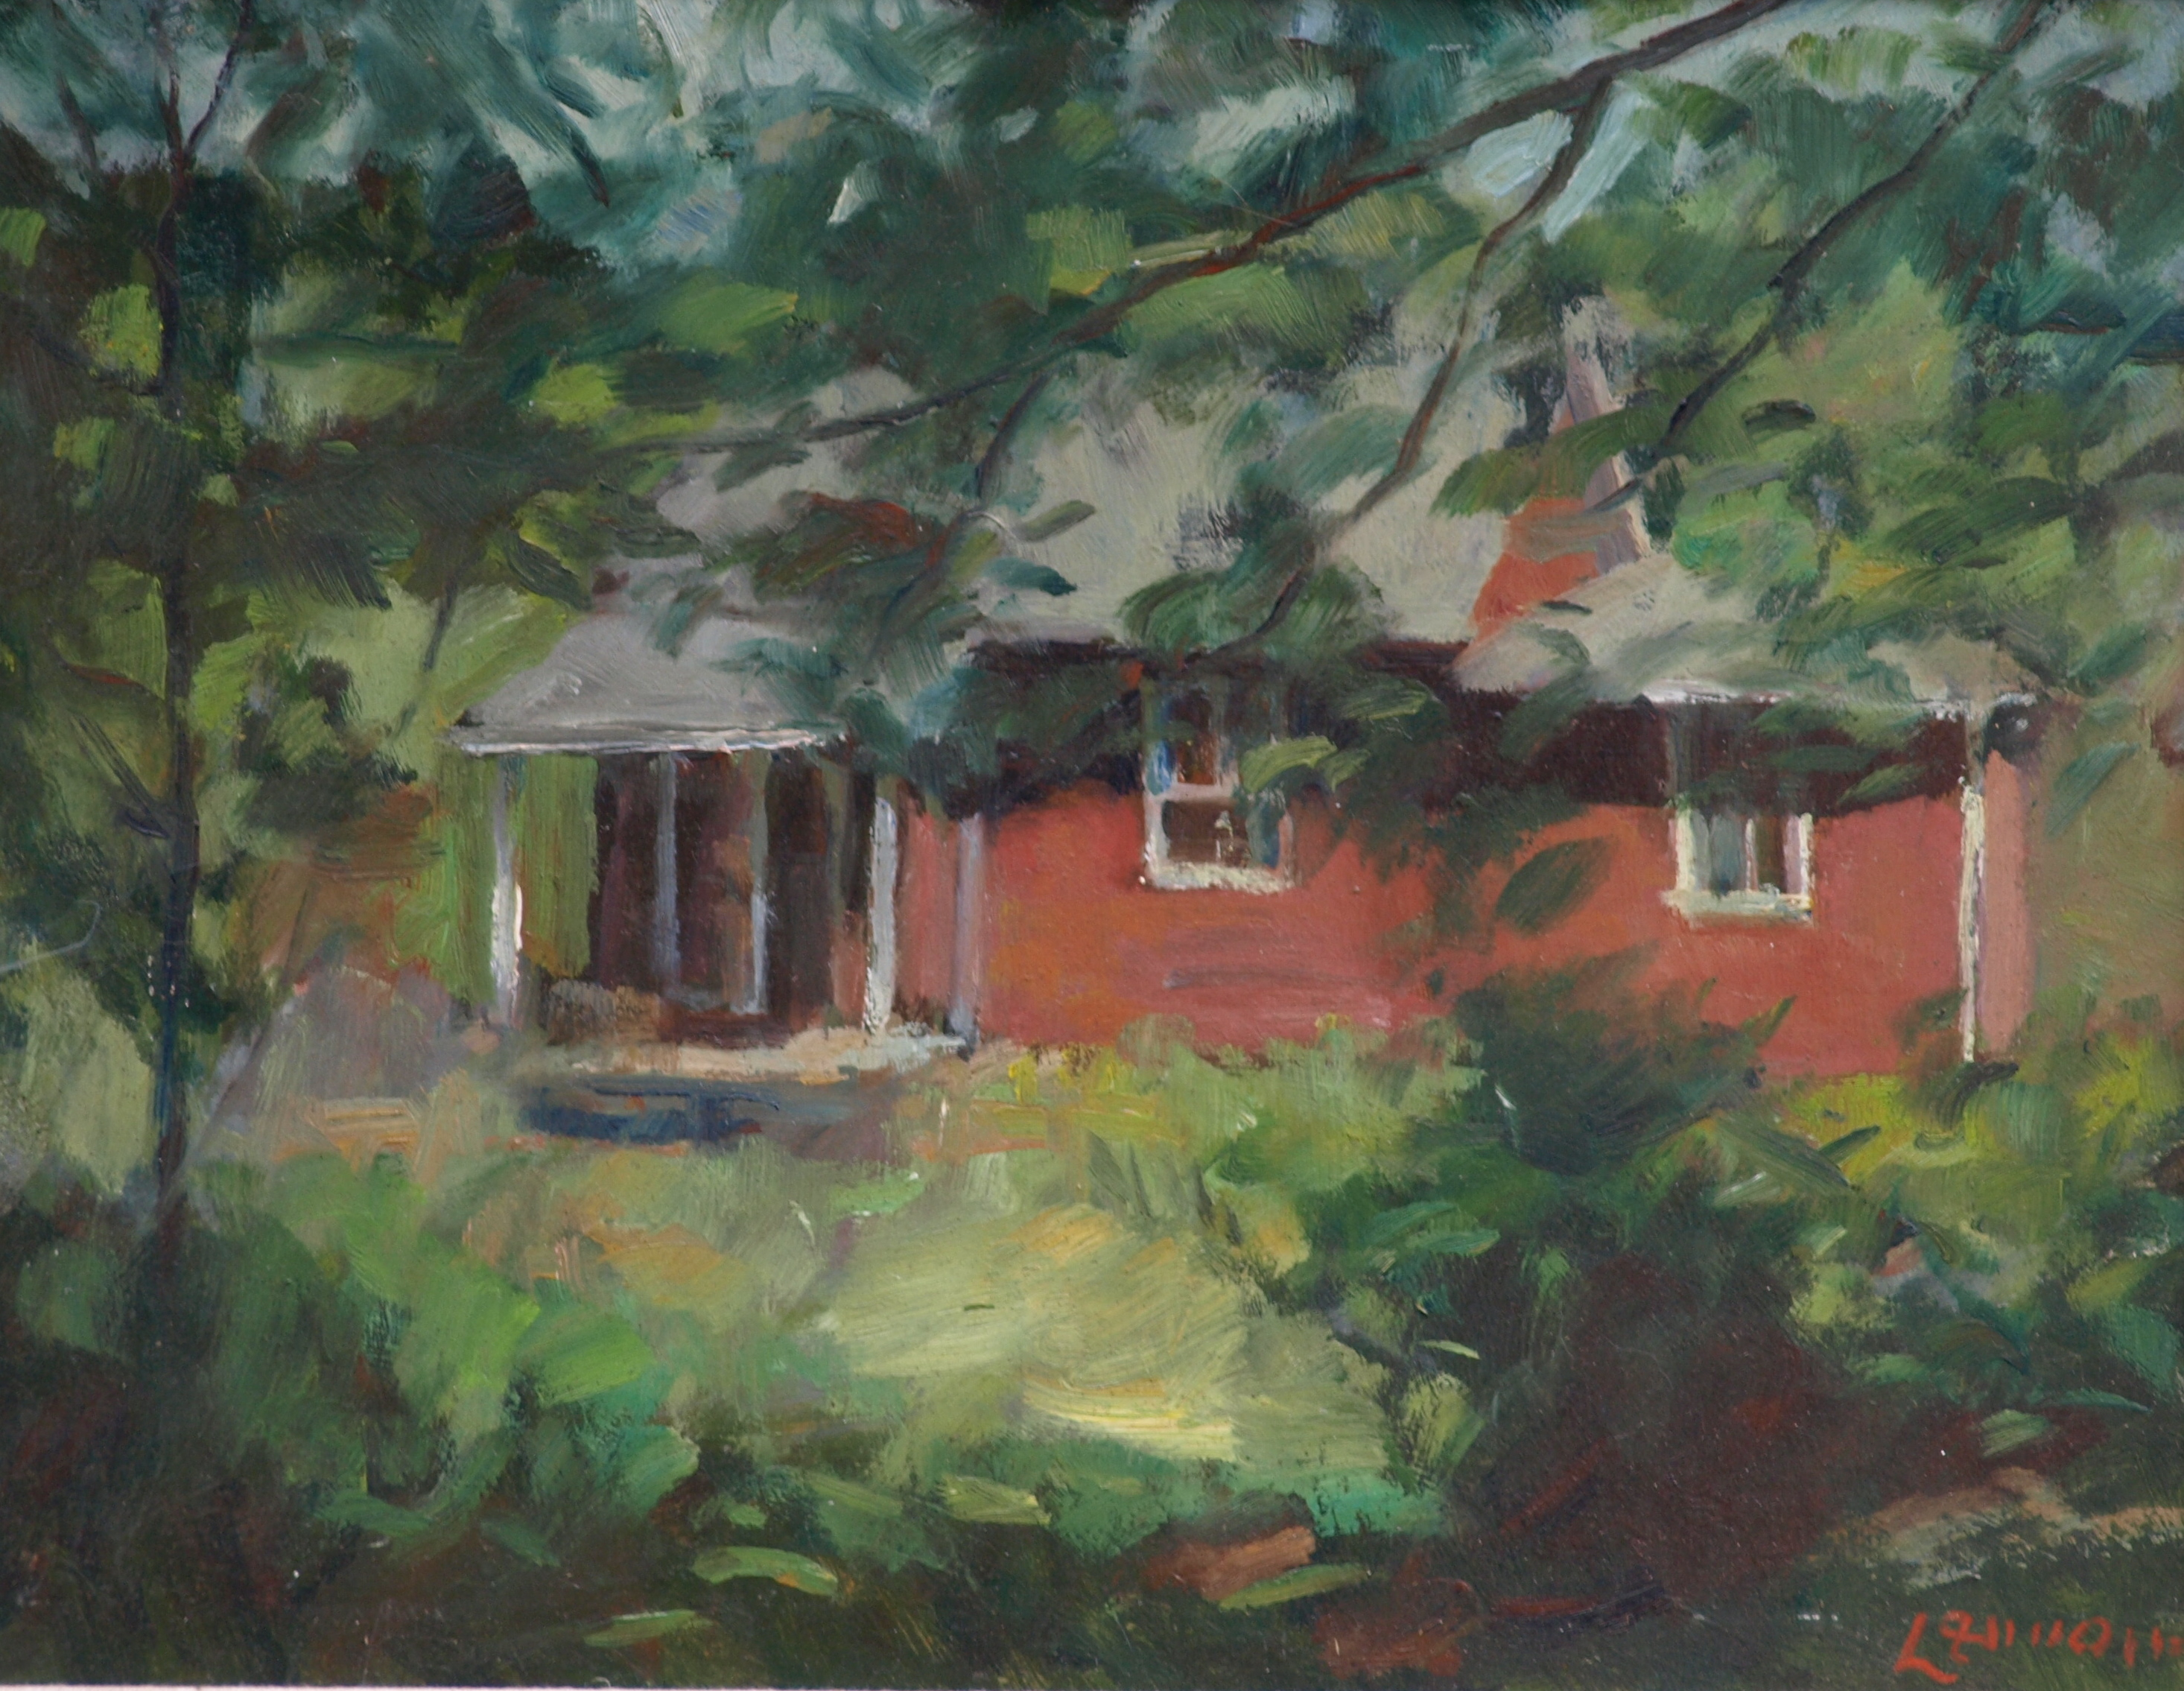 Artist's House, Oil on Panel, 14 x 18 Inches, by Bernard Lennon, $350